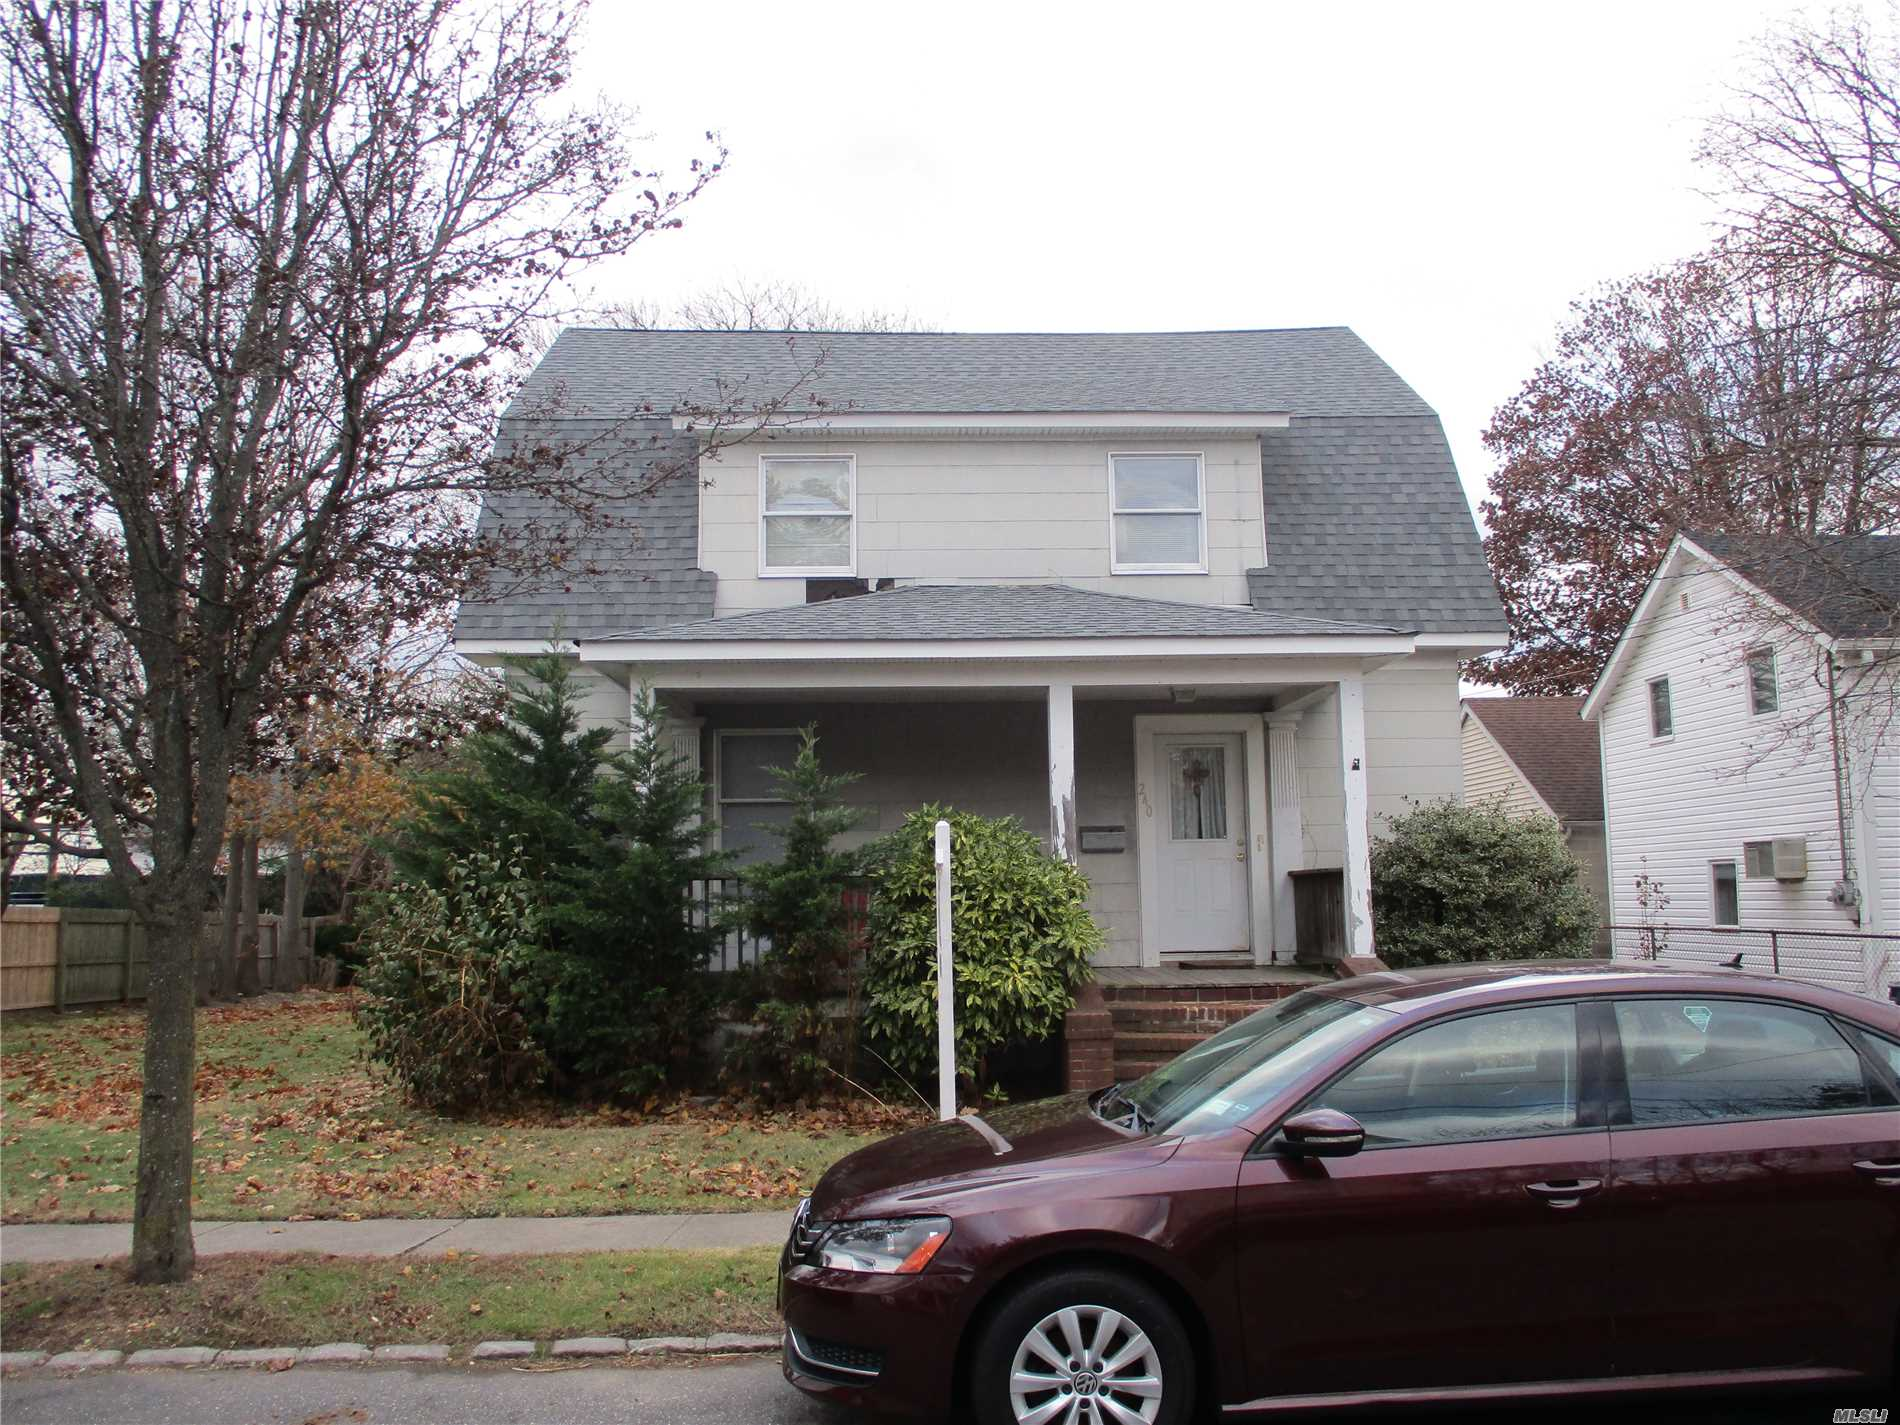 Two Family On Huge 80X150 Lot. Dead End Street In The Village Of Cedarhurst. Many Possibilities - Convert To A One Family, Continued Use As A Two Family, Possible Development Site. Two Car Garage.